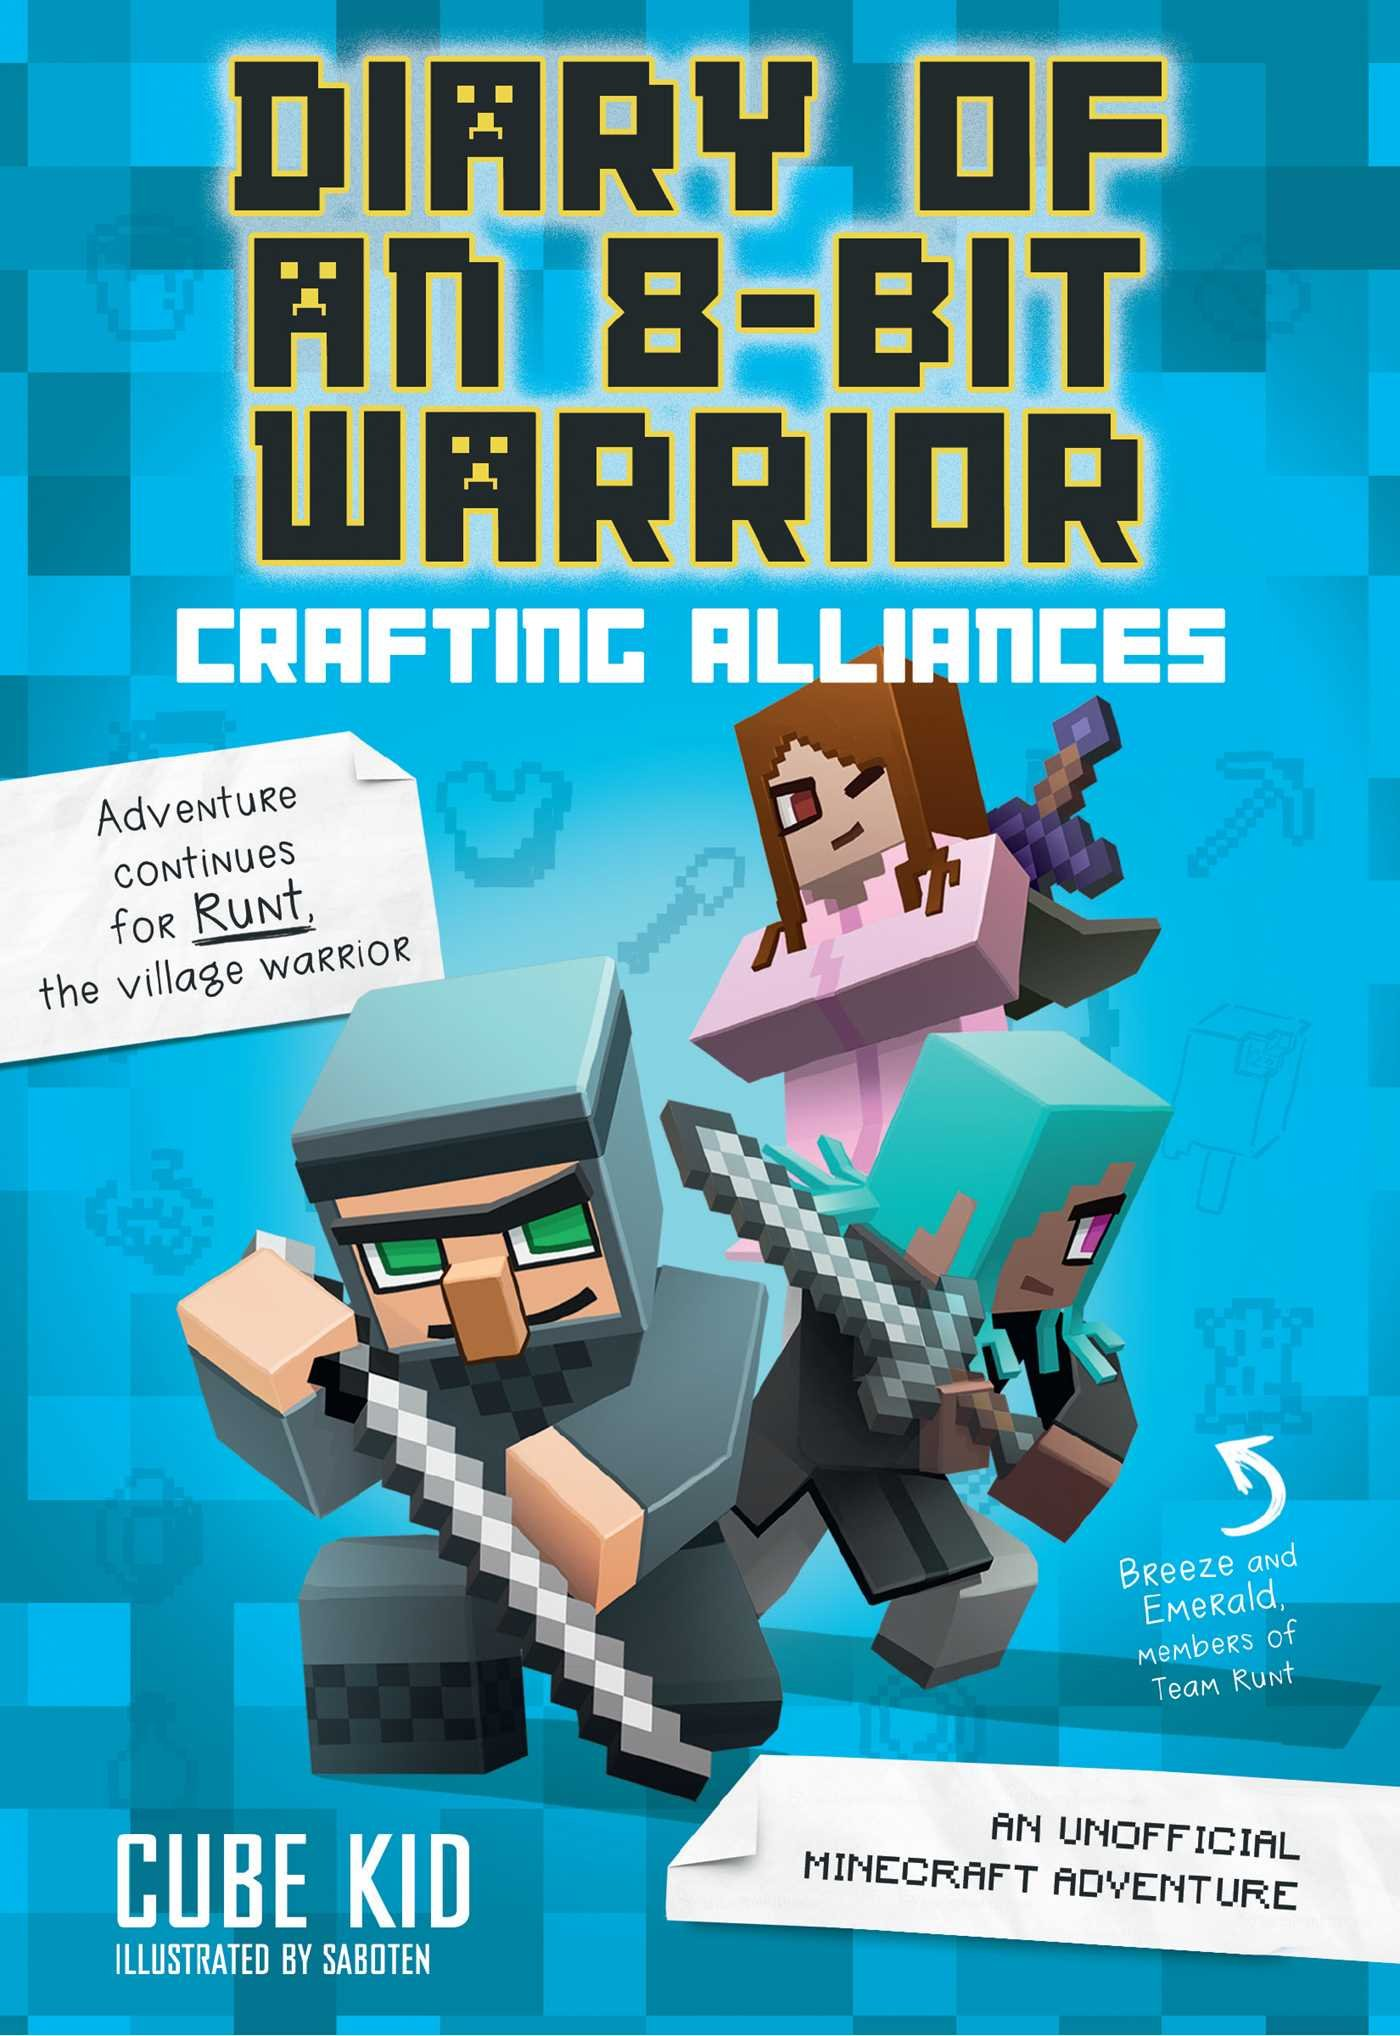 Diary 8 Bit Warrior Alliances Unofficial product image